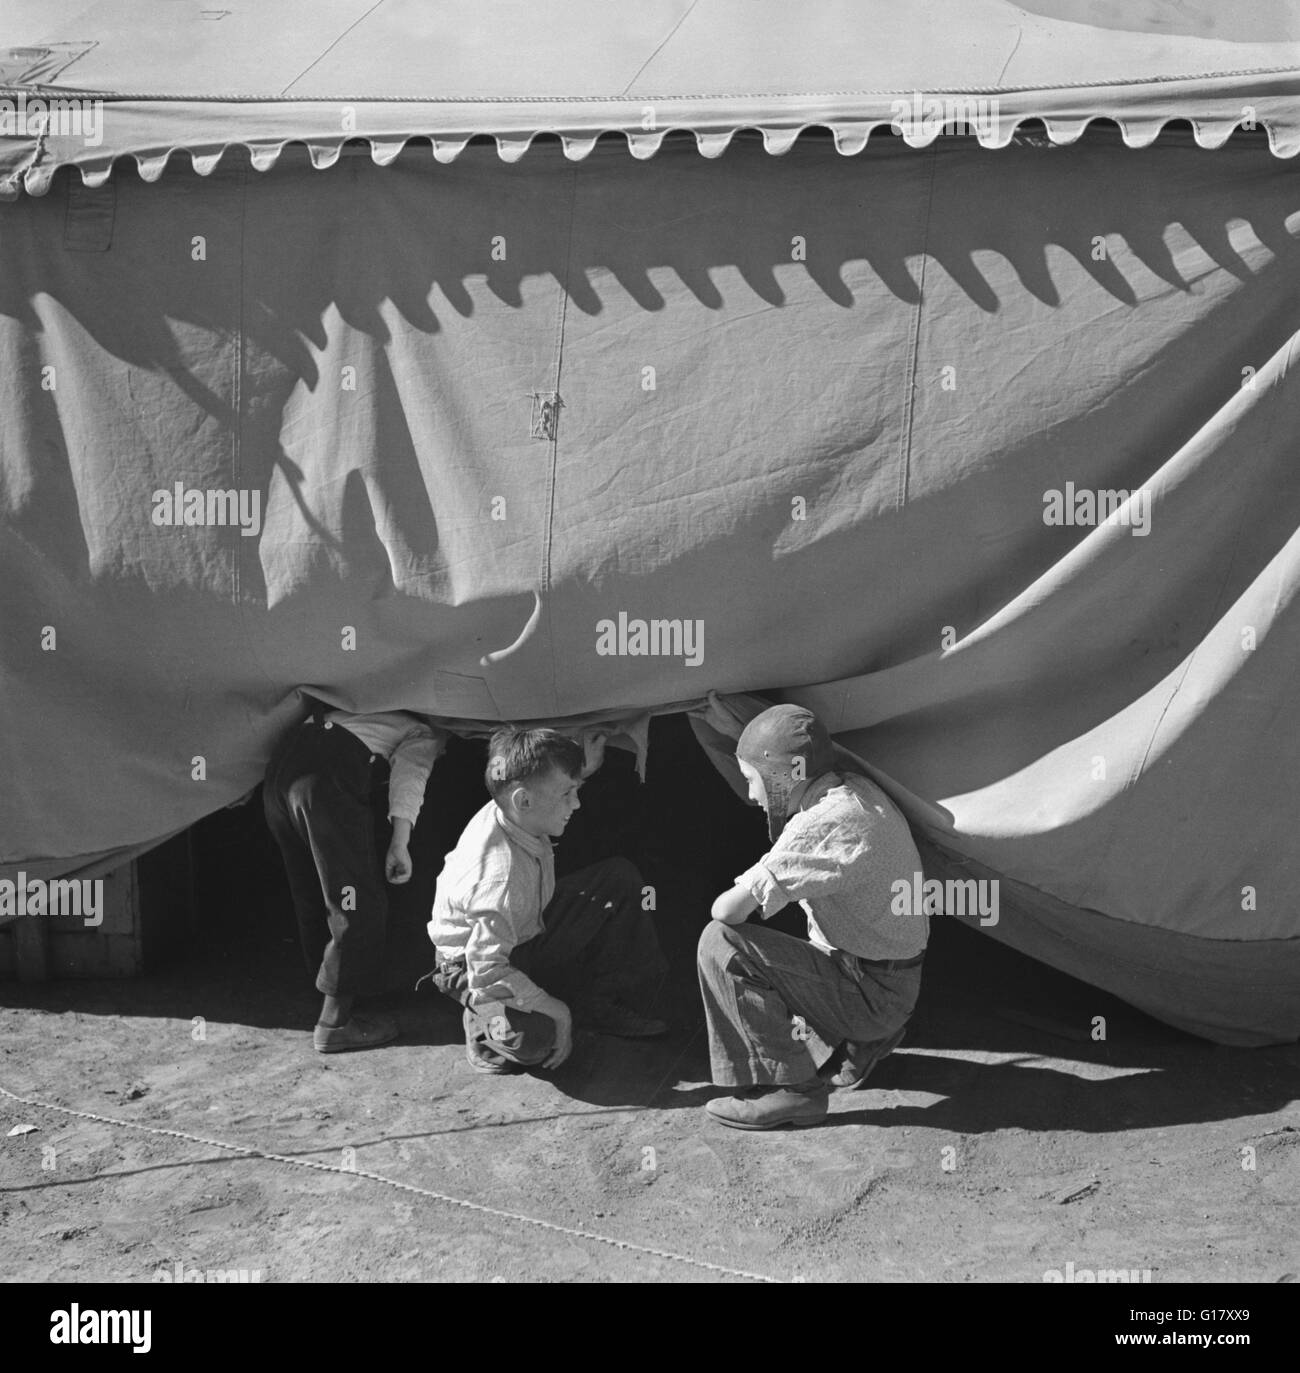 Children Sneaking Under Circus Tent, Roswell, New Mexico, USA, Arthur Rothstein for Farm Security Administration, - Stock Image